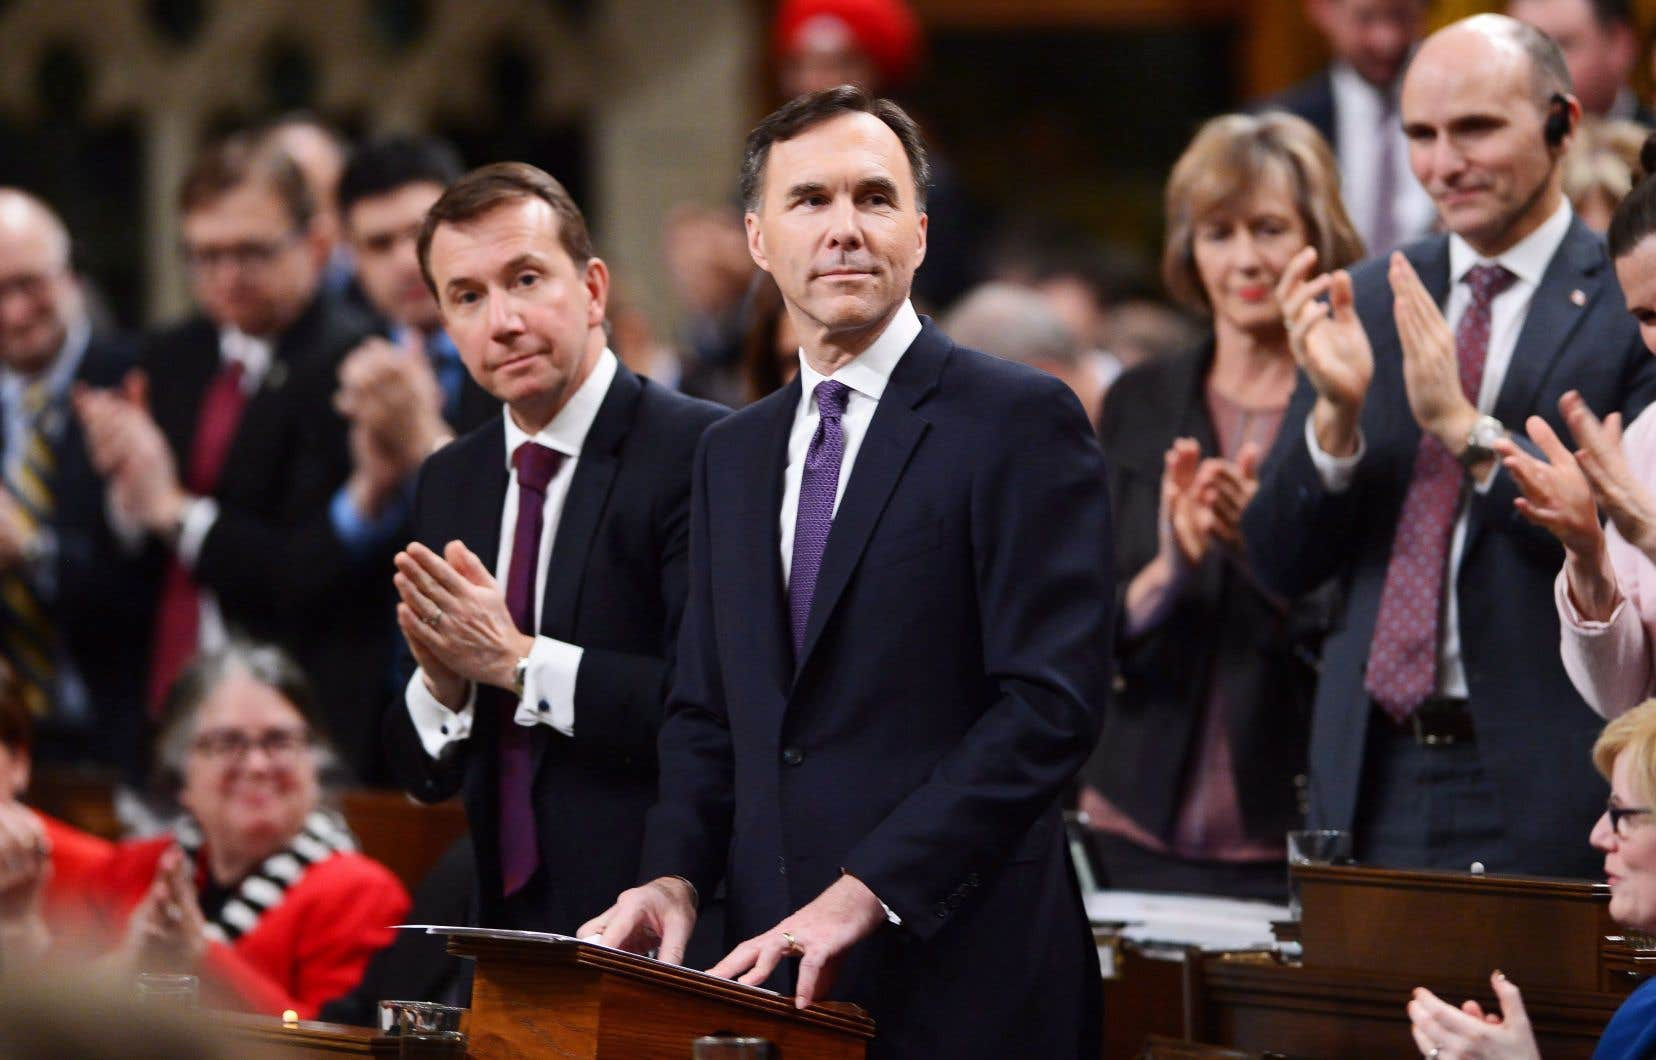 Le ministre Bill Morneau